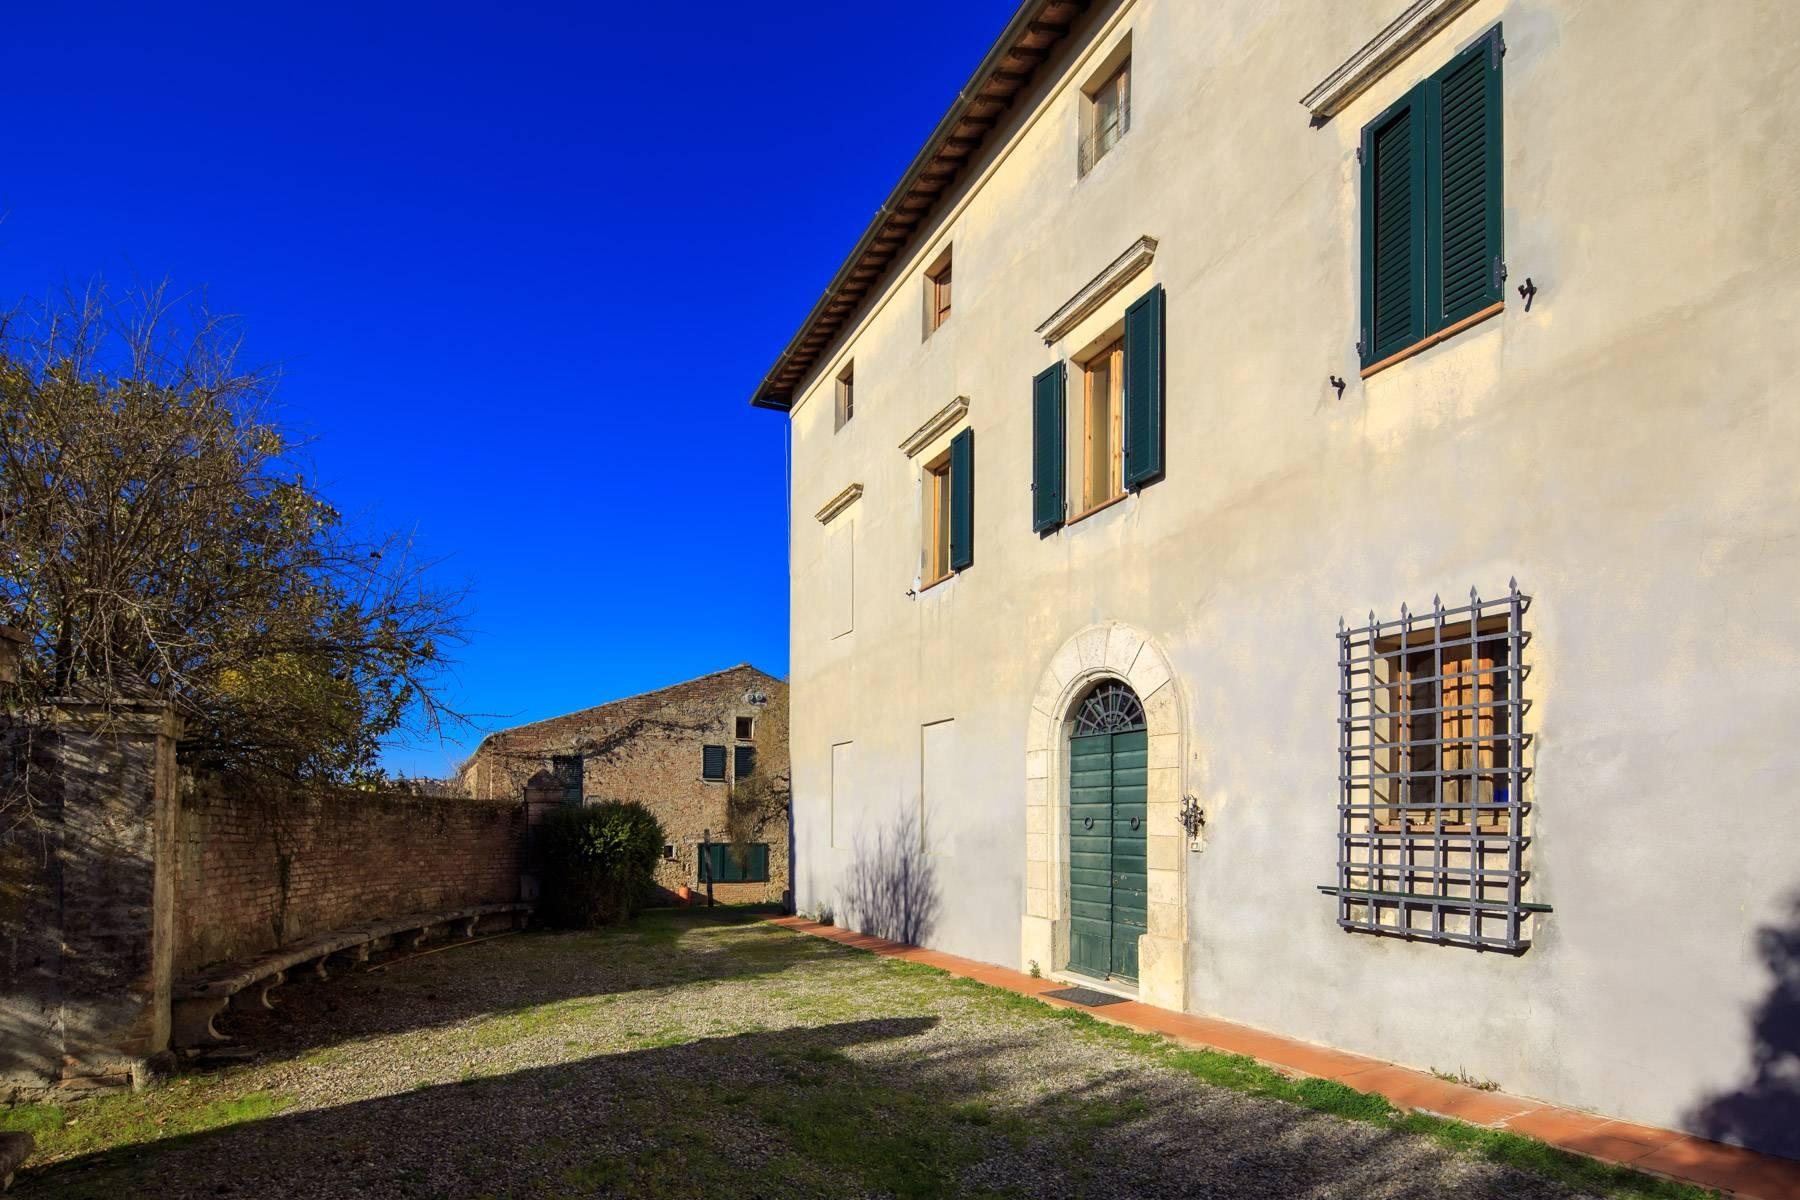 Wonderful historical Villa and country house close by Siena - 1